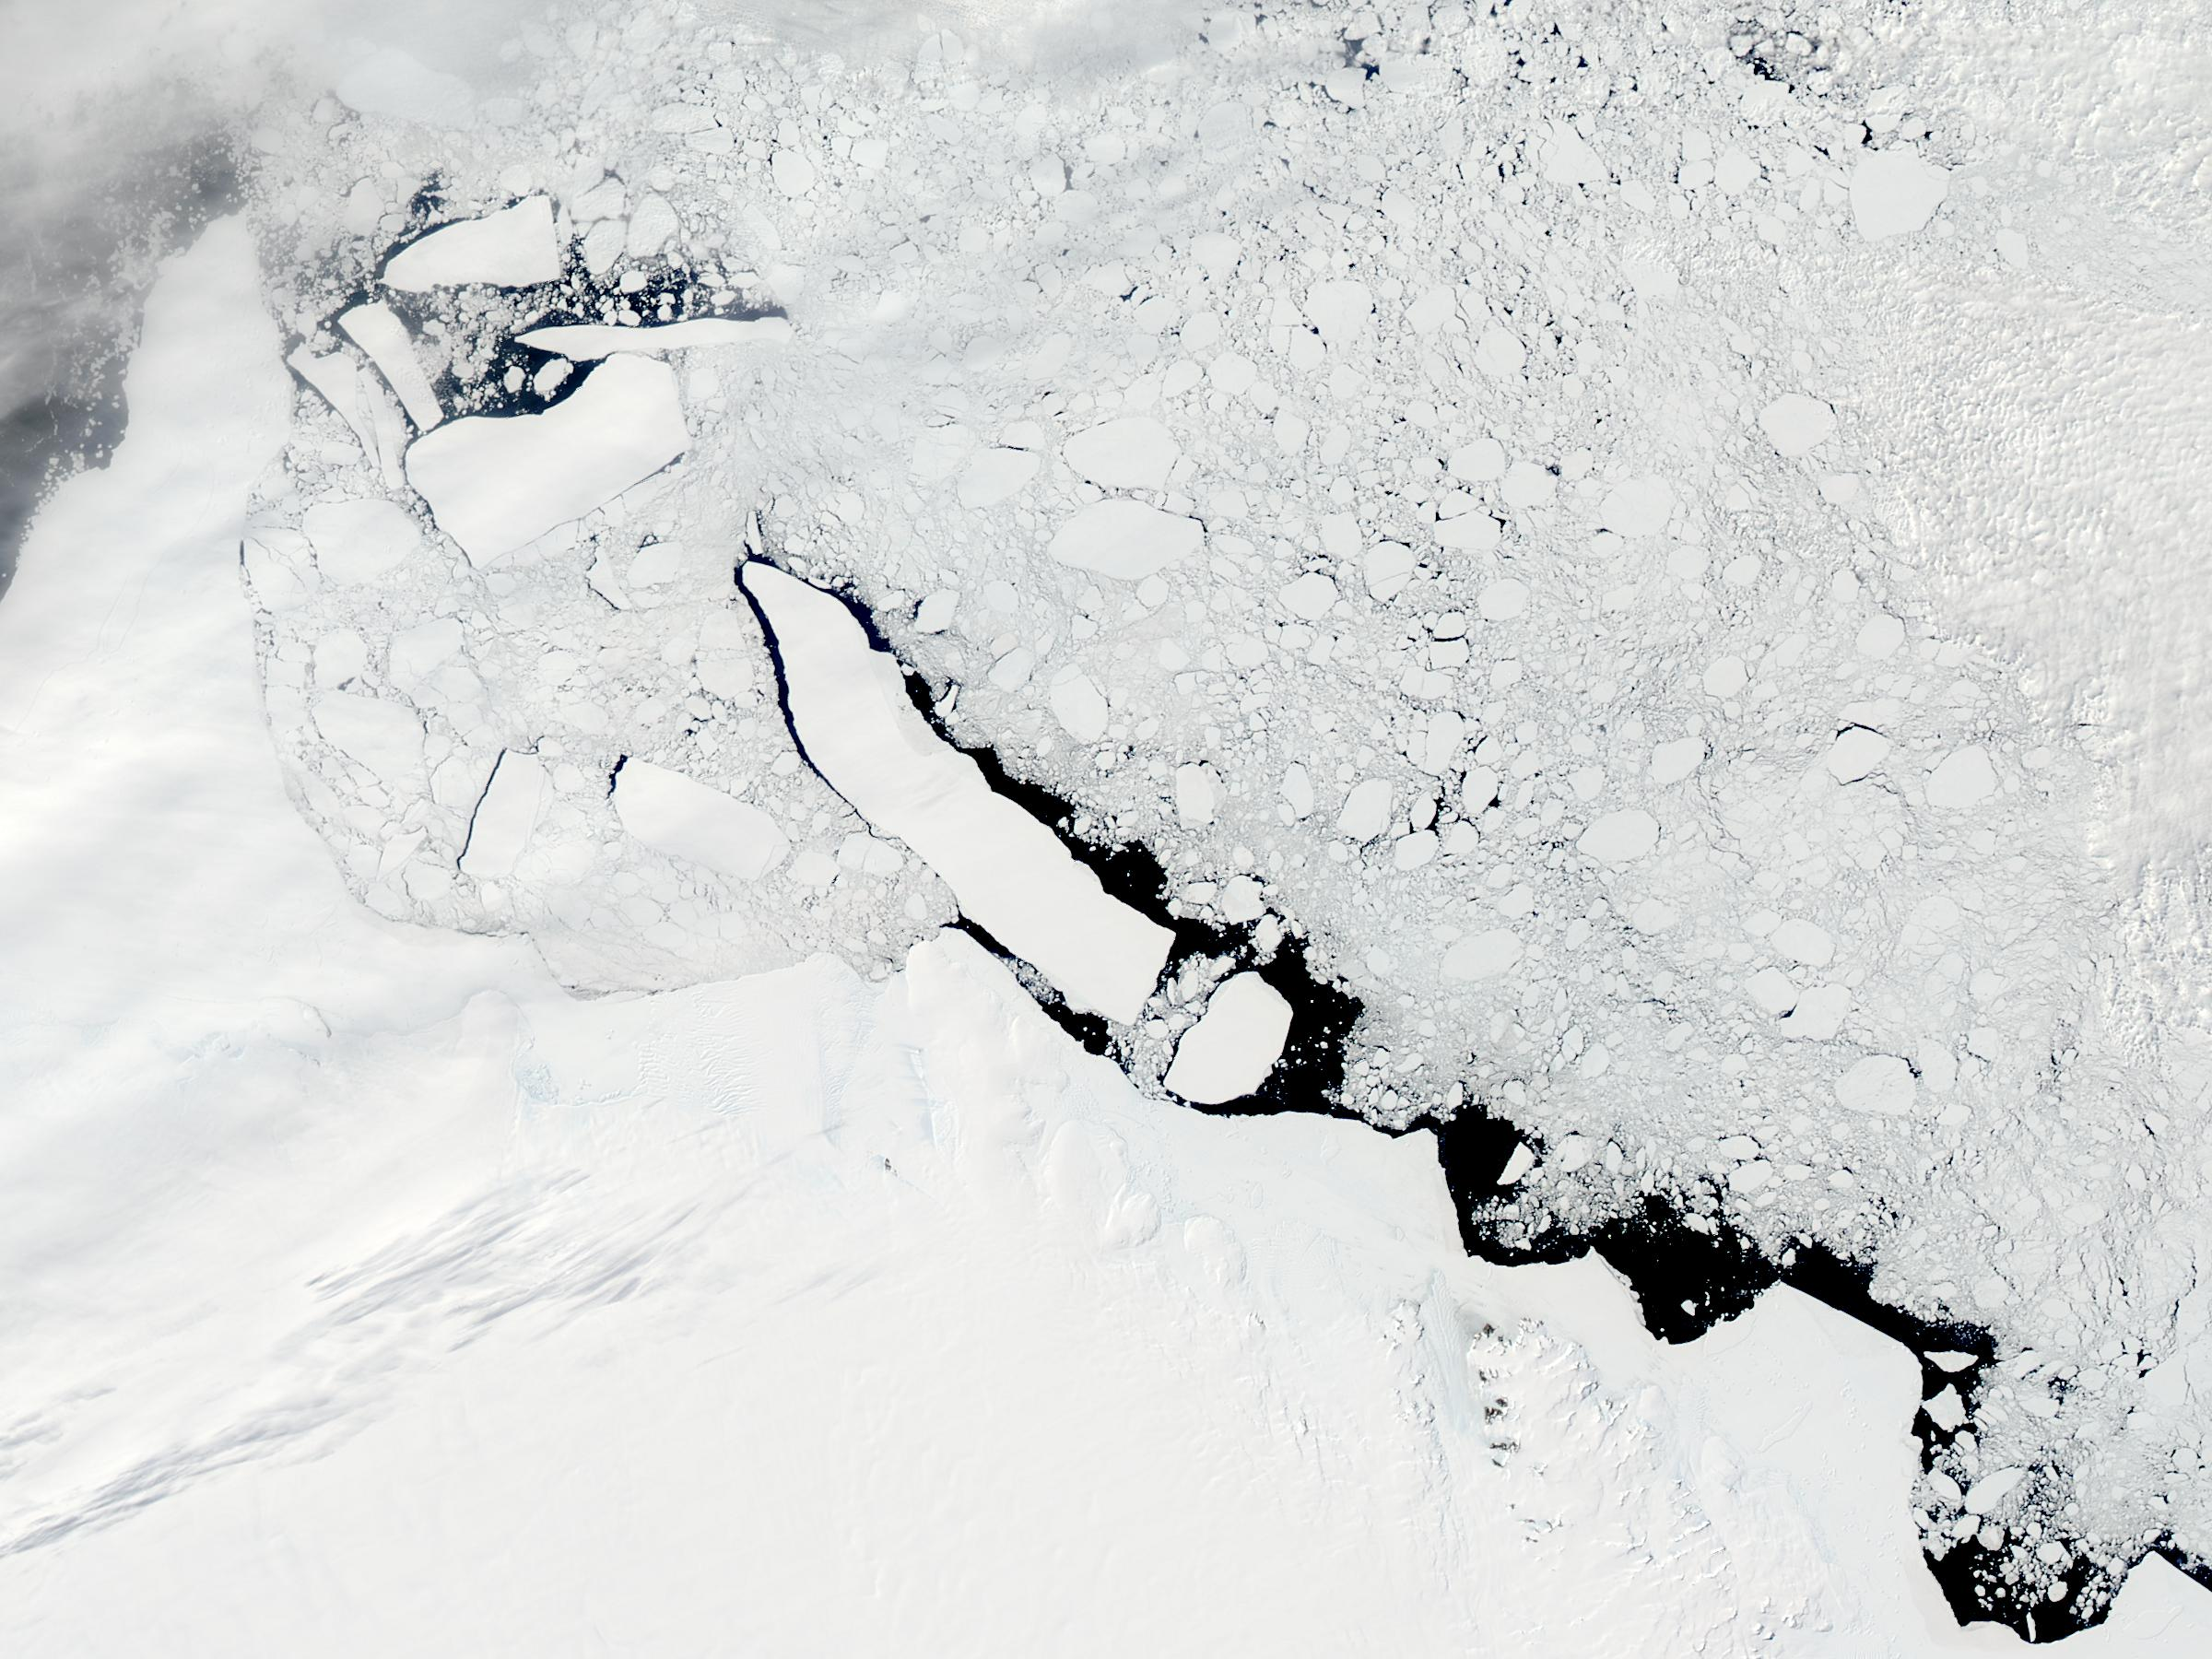 C-19 icebergs off Mawson Peninsula, Antarctica - related image preview